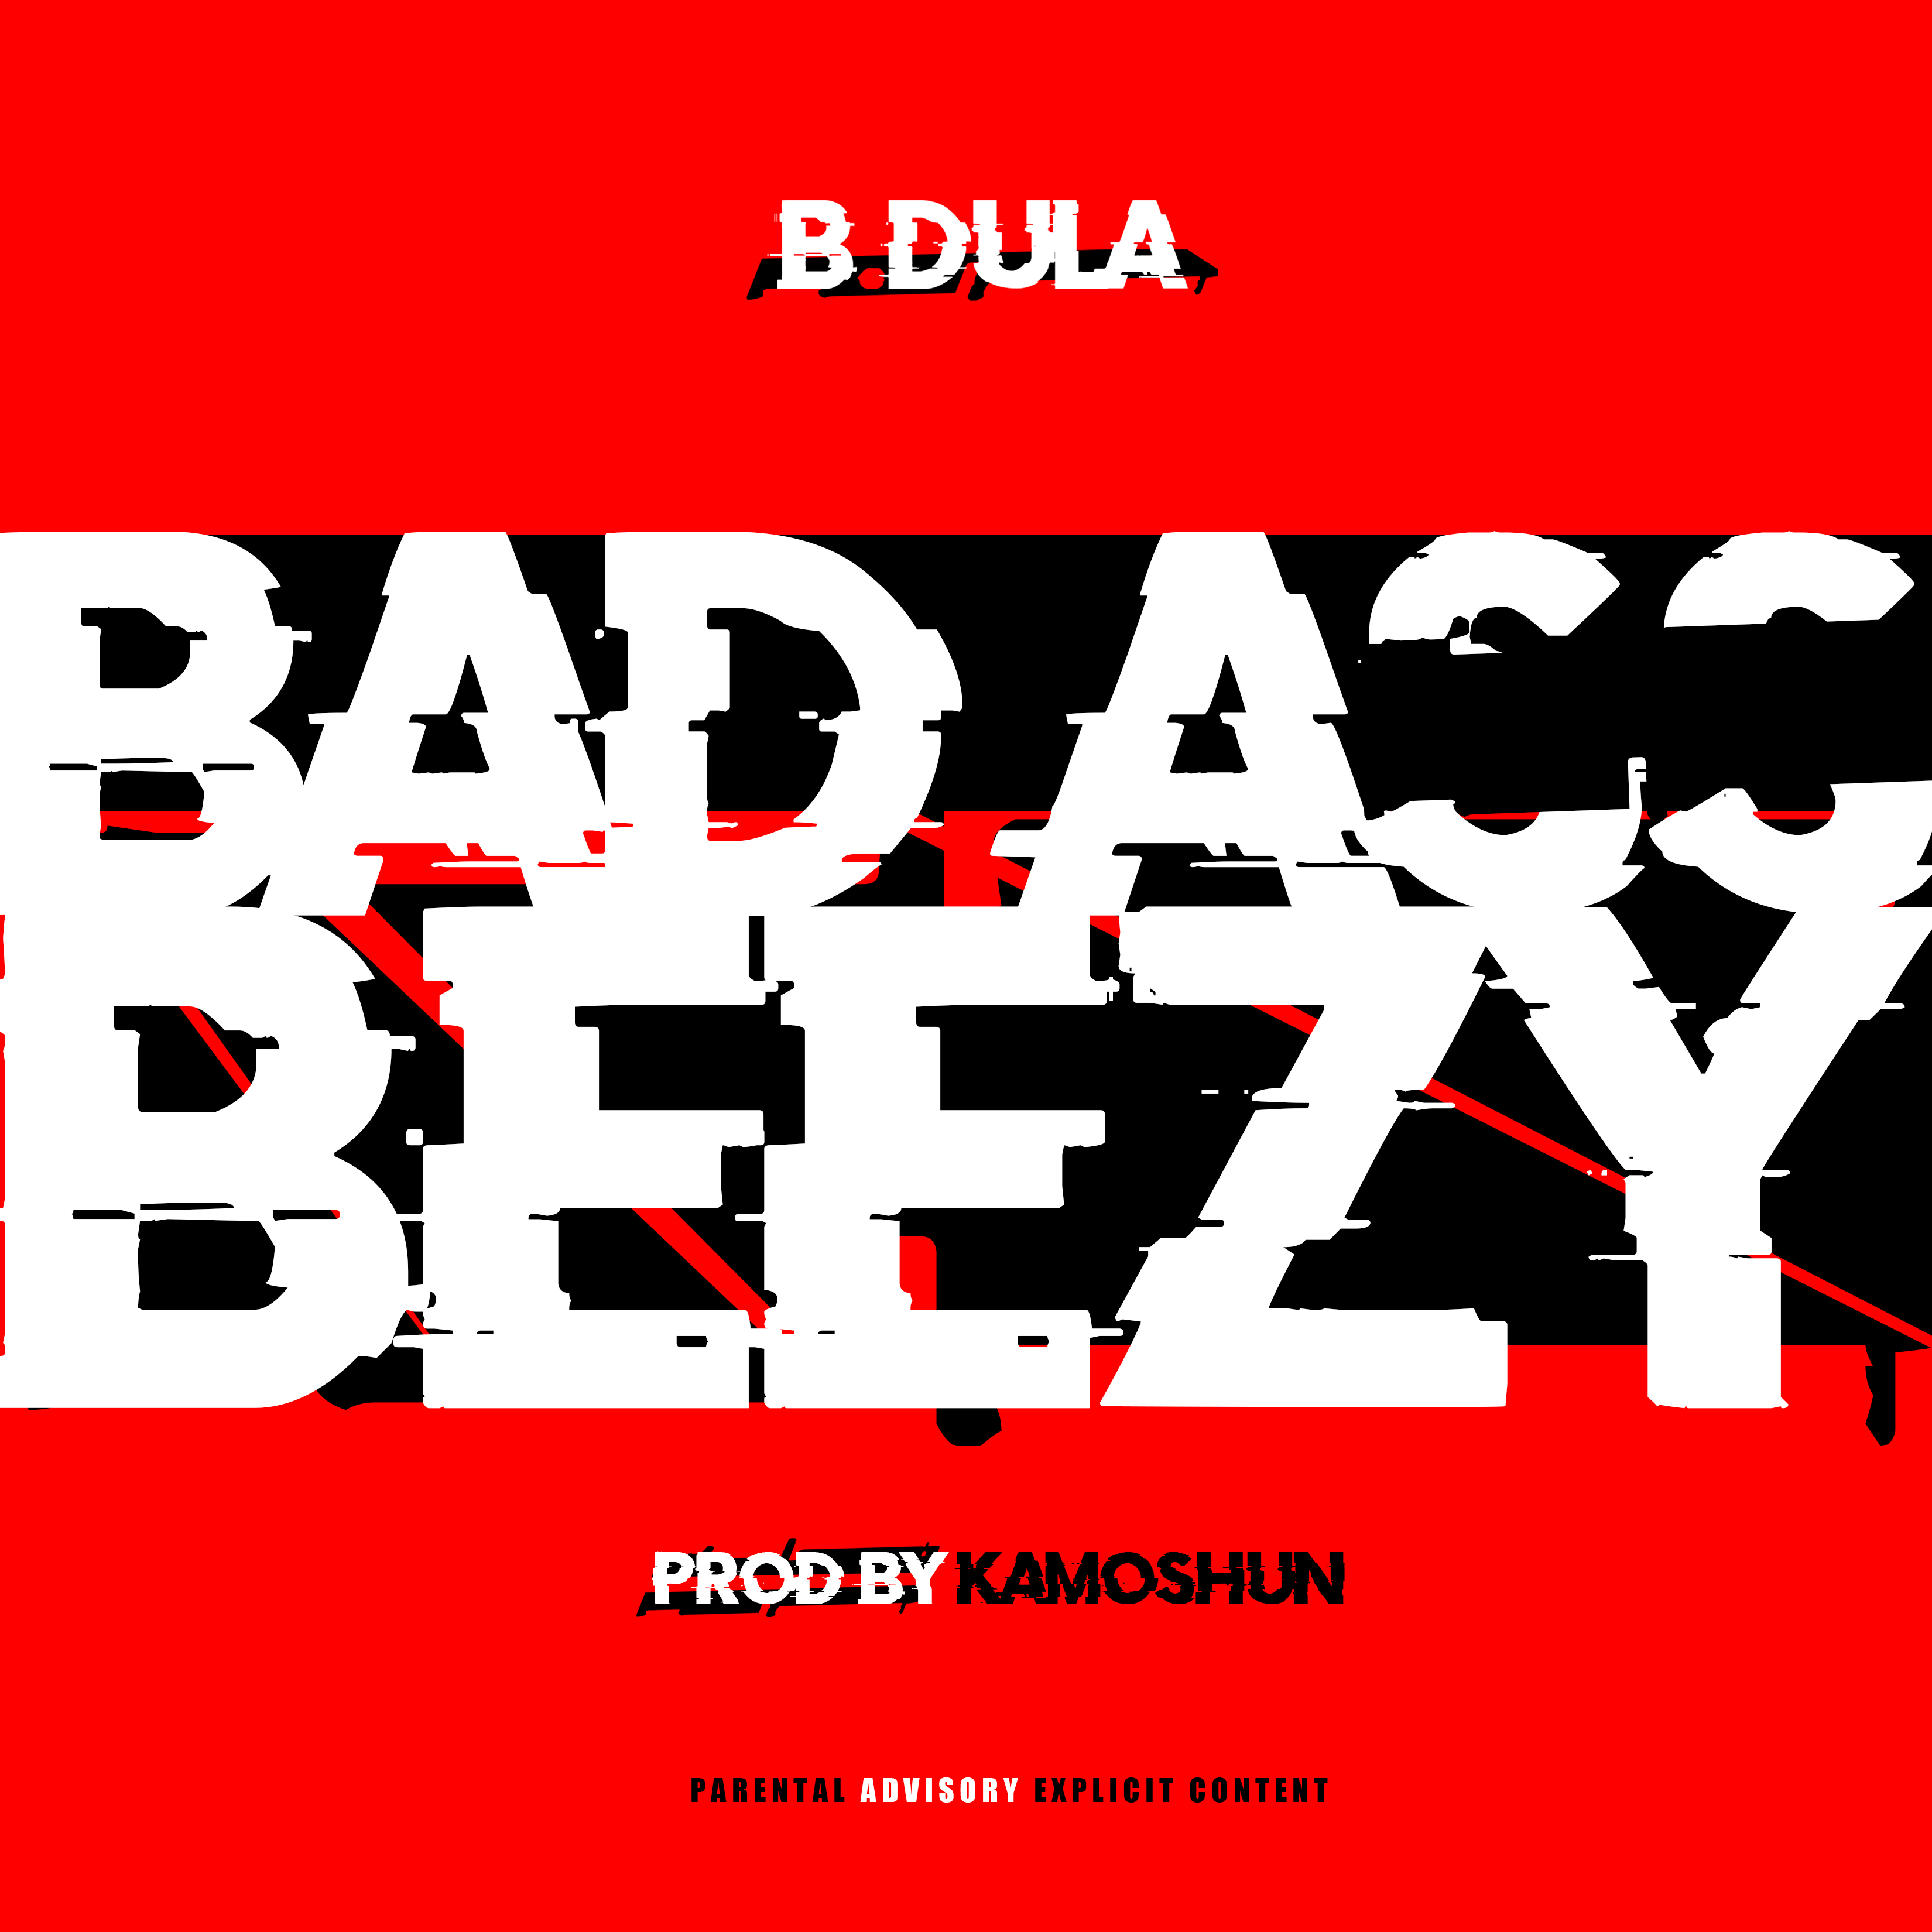 B DULA BAD ASS BEEZY COVER